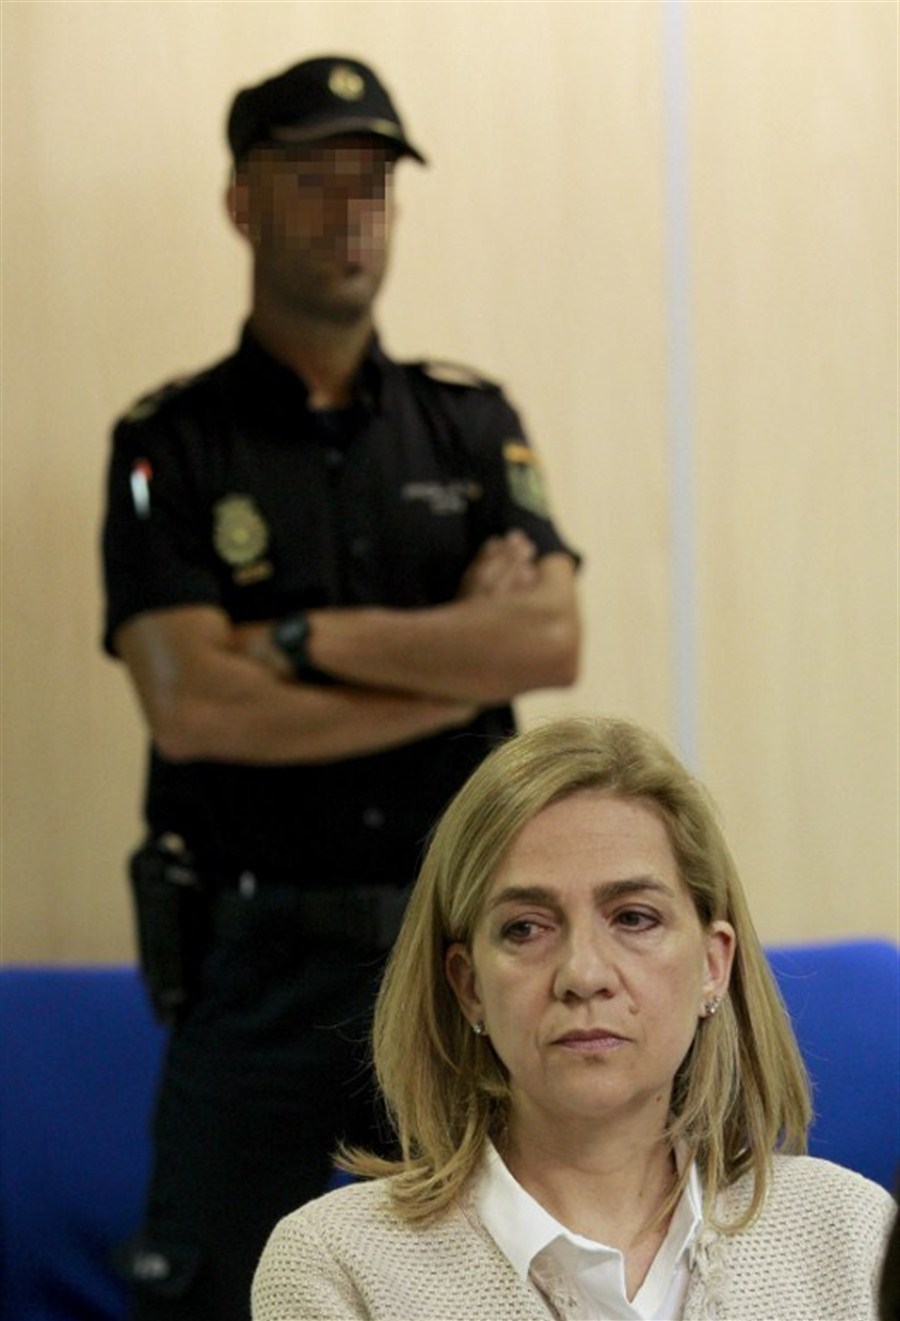 Spanish princess cleared of tax dodging charges